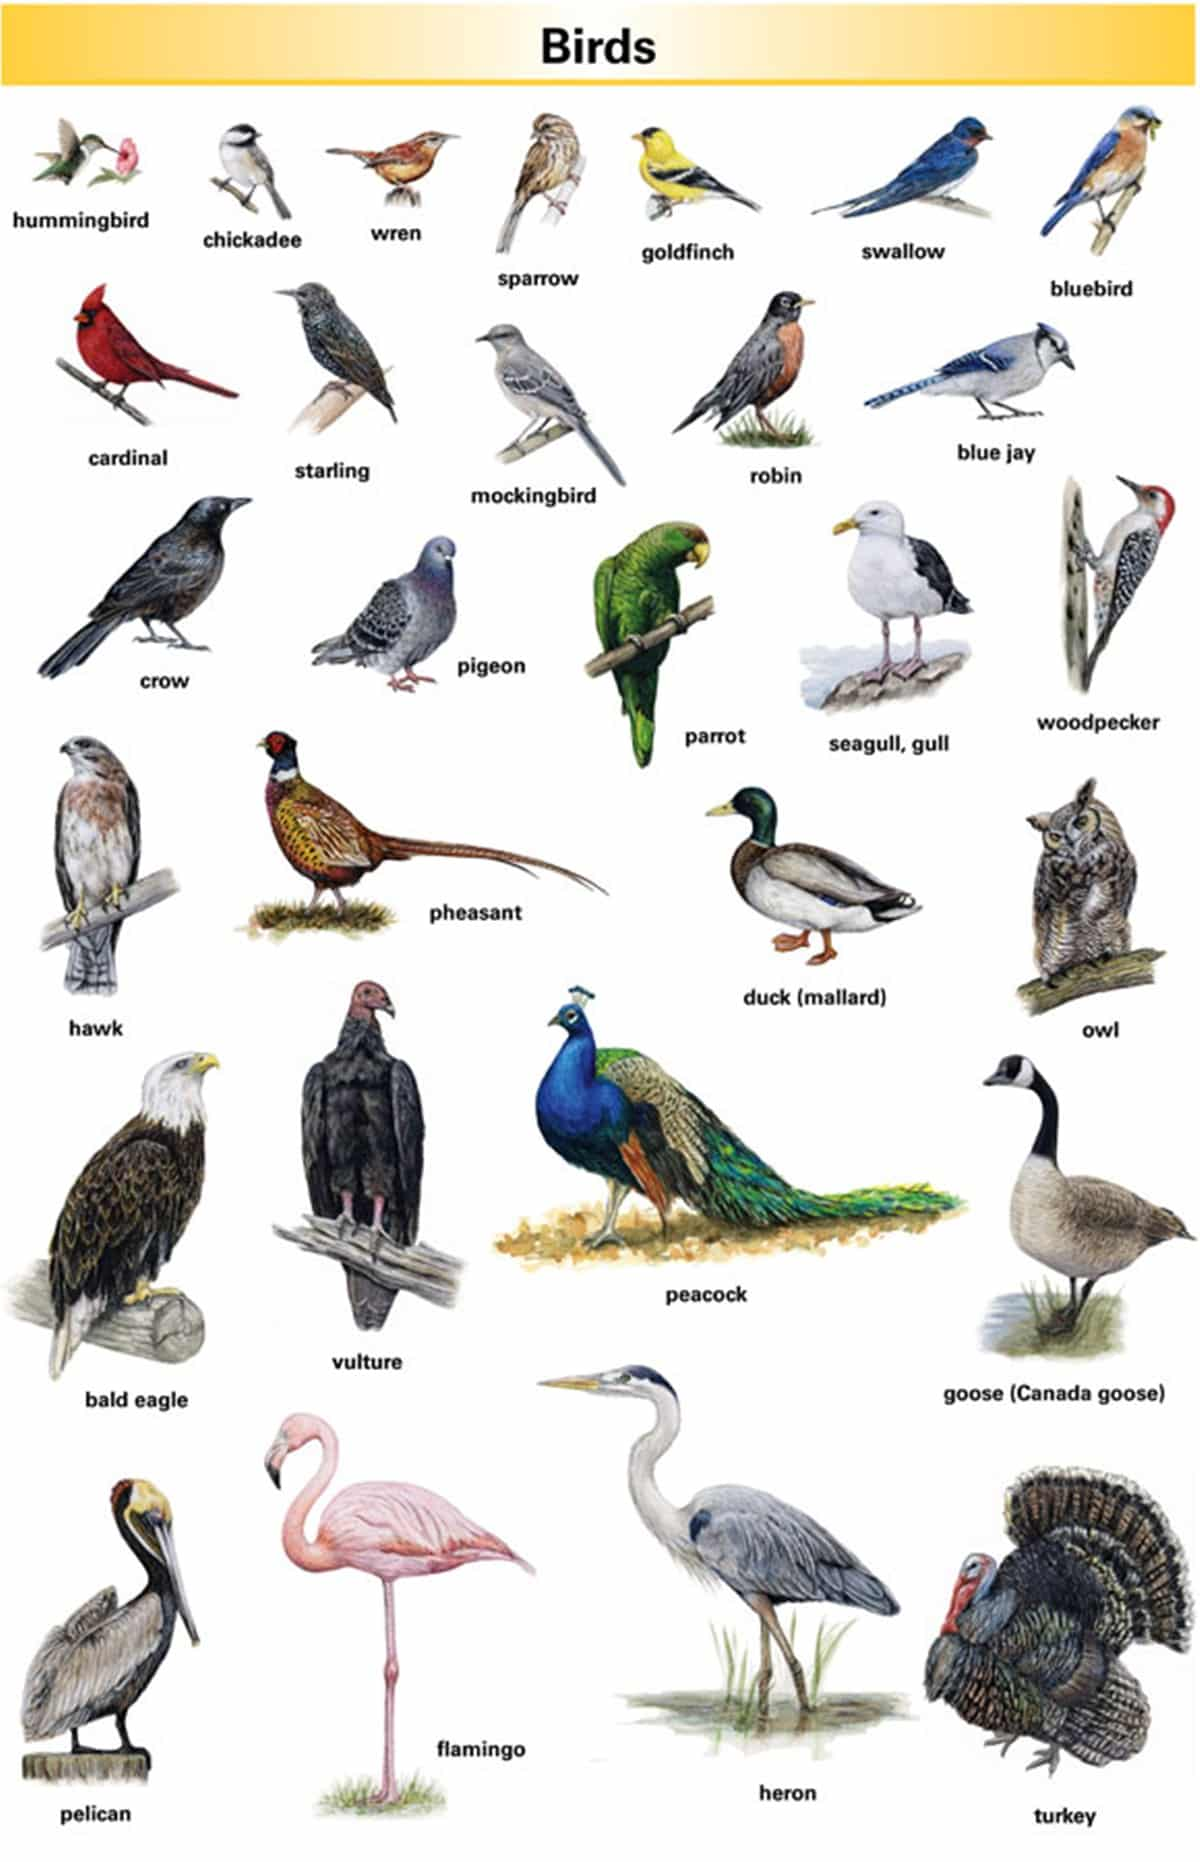 Learn English Vocabulary through Pictures: 100+ Animal Names 18